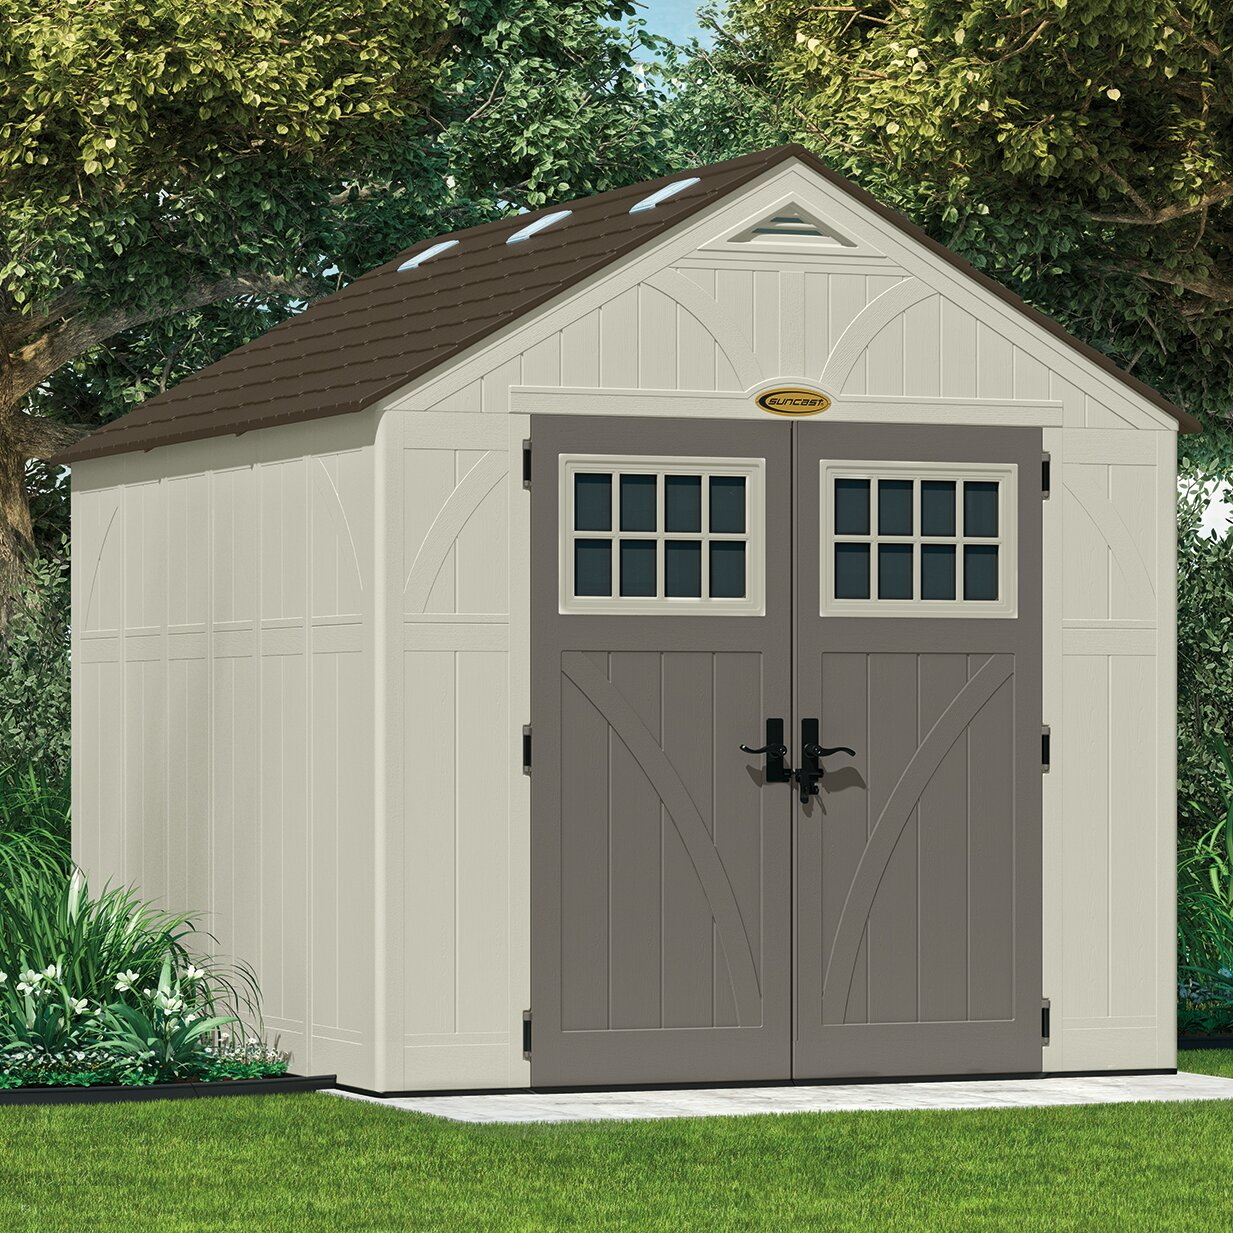 Suncast tremont 8 ft w x 10 ft d resin storage shed for Resin garden shed